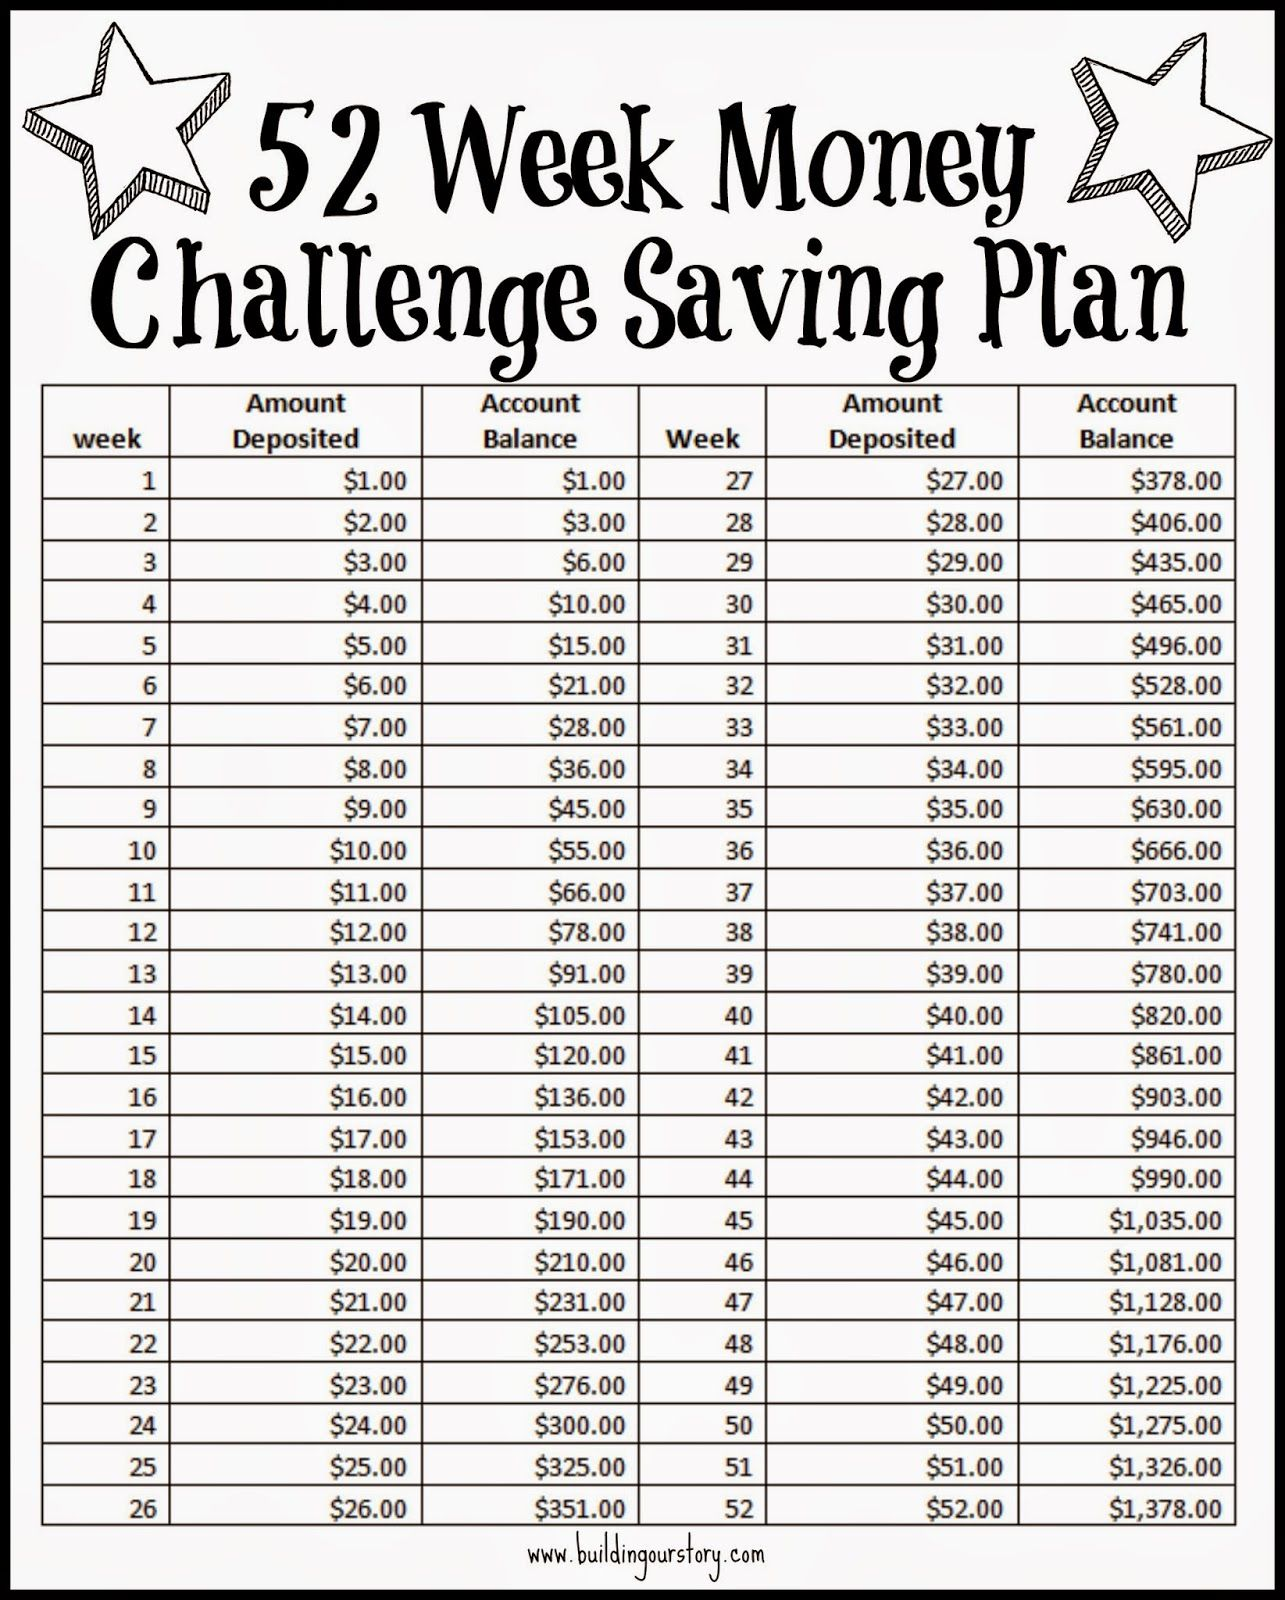 Free money saving weekly meal plans printable plans with family - 52 Week Money Challenge Saving Plan Free Printable